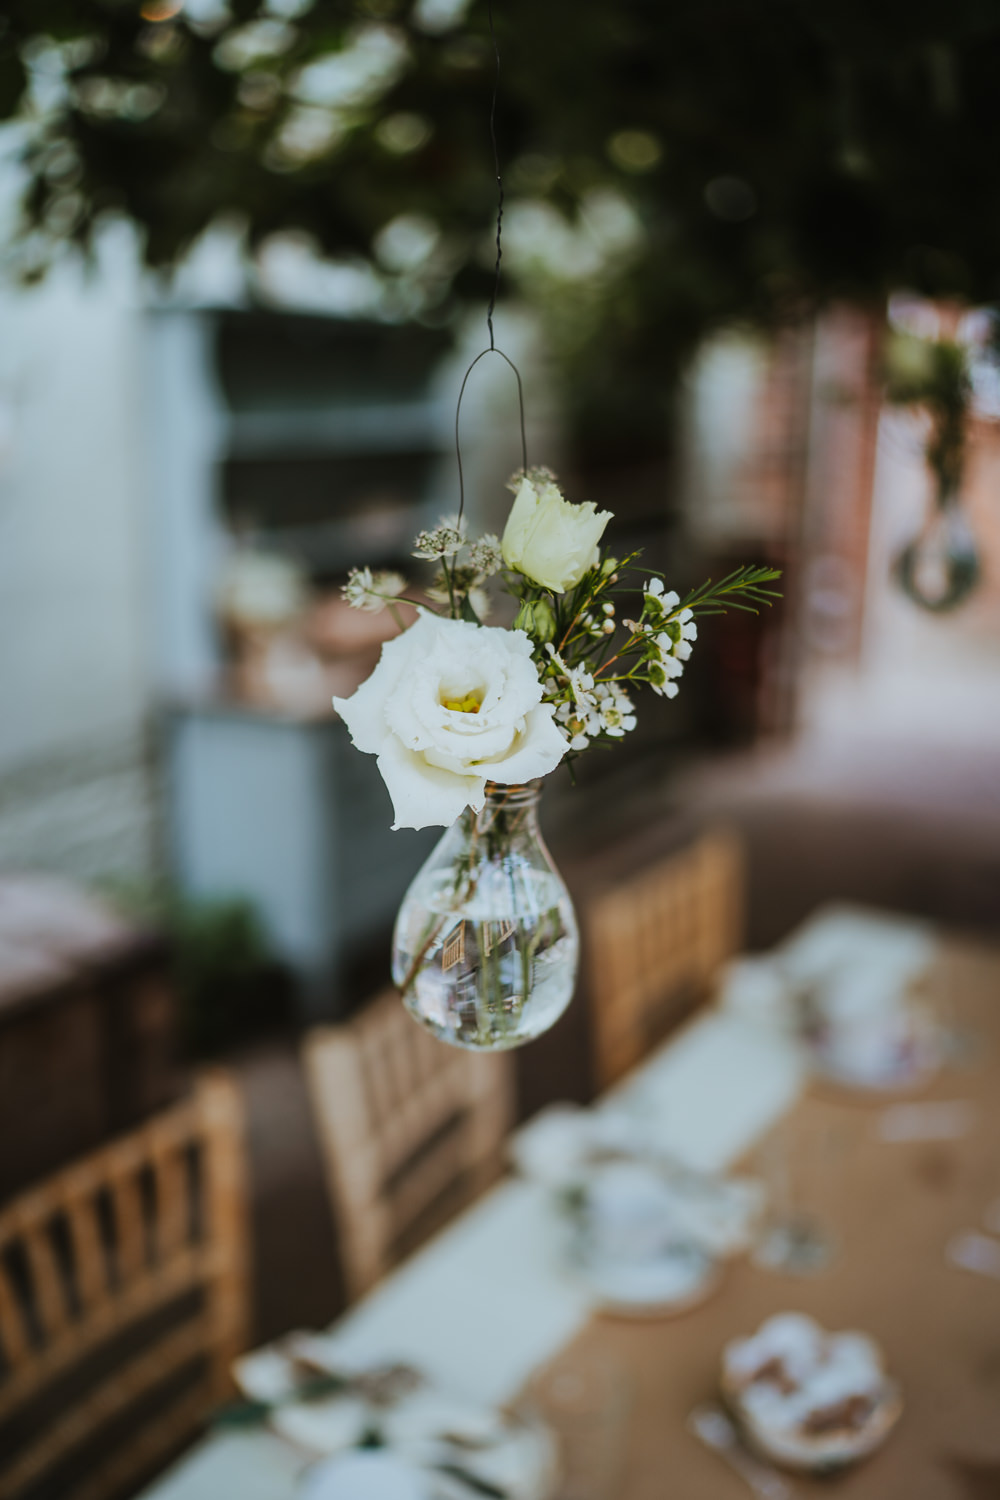 Hanging Flowers Suspended Vases Micro Wedding Nicola Dawson Photography